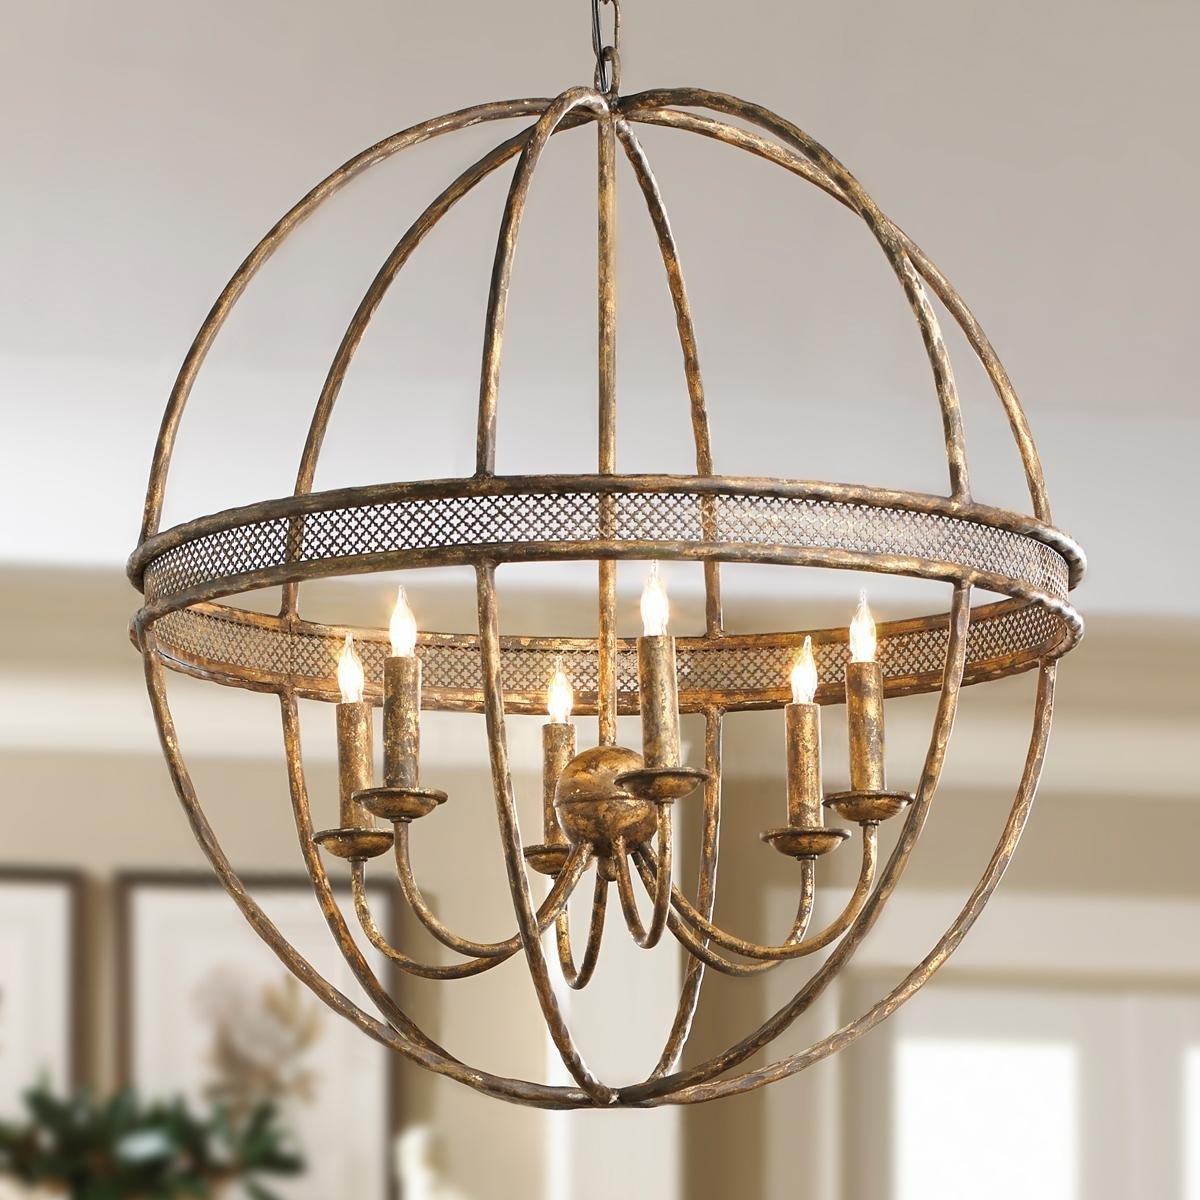 Lattice Banded Sphere Chandelier Aged Golden Lattice Adds The Within Metal Sphere Chandelier (Image 8 of 15)